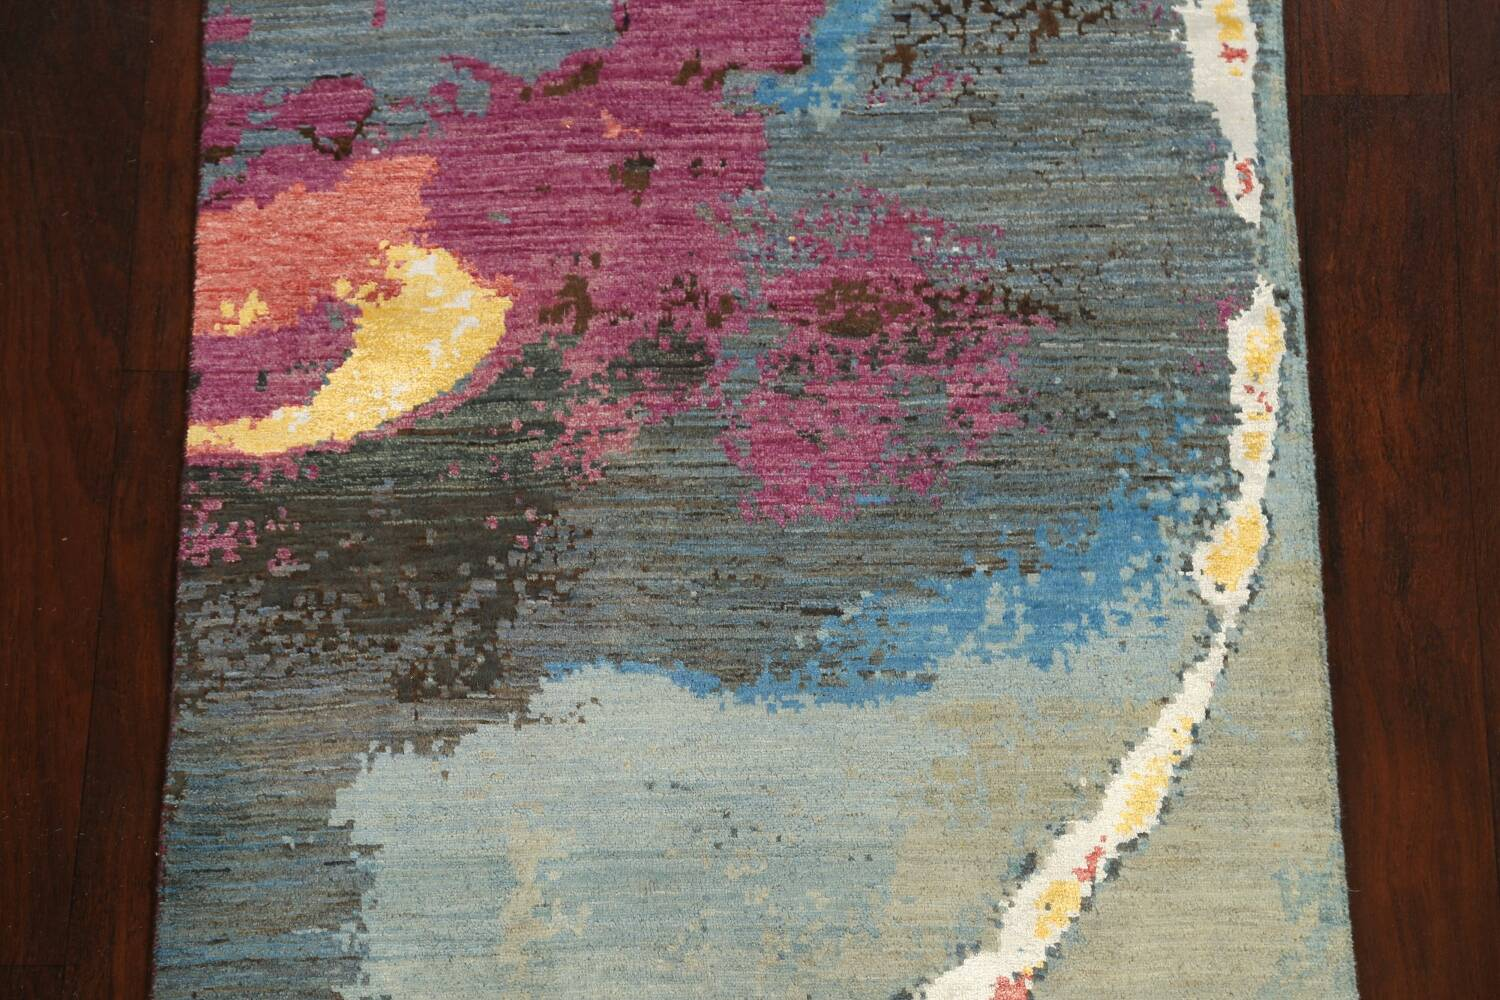 Artistic Contemporary Abstract Oriental Runner Rug 3x9 image 4